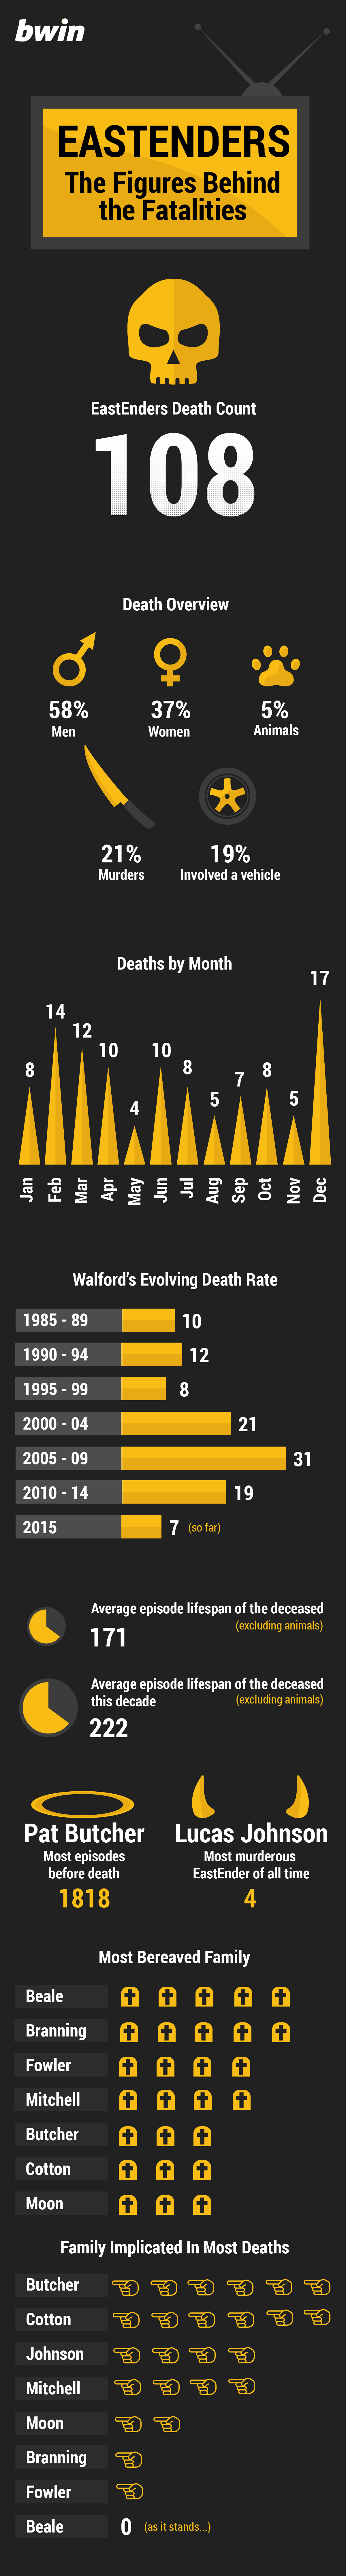 A history of death in EastEnders infographic